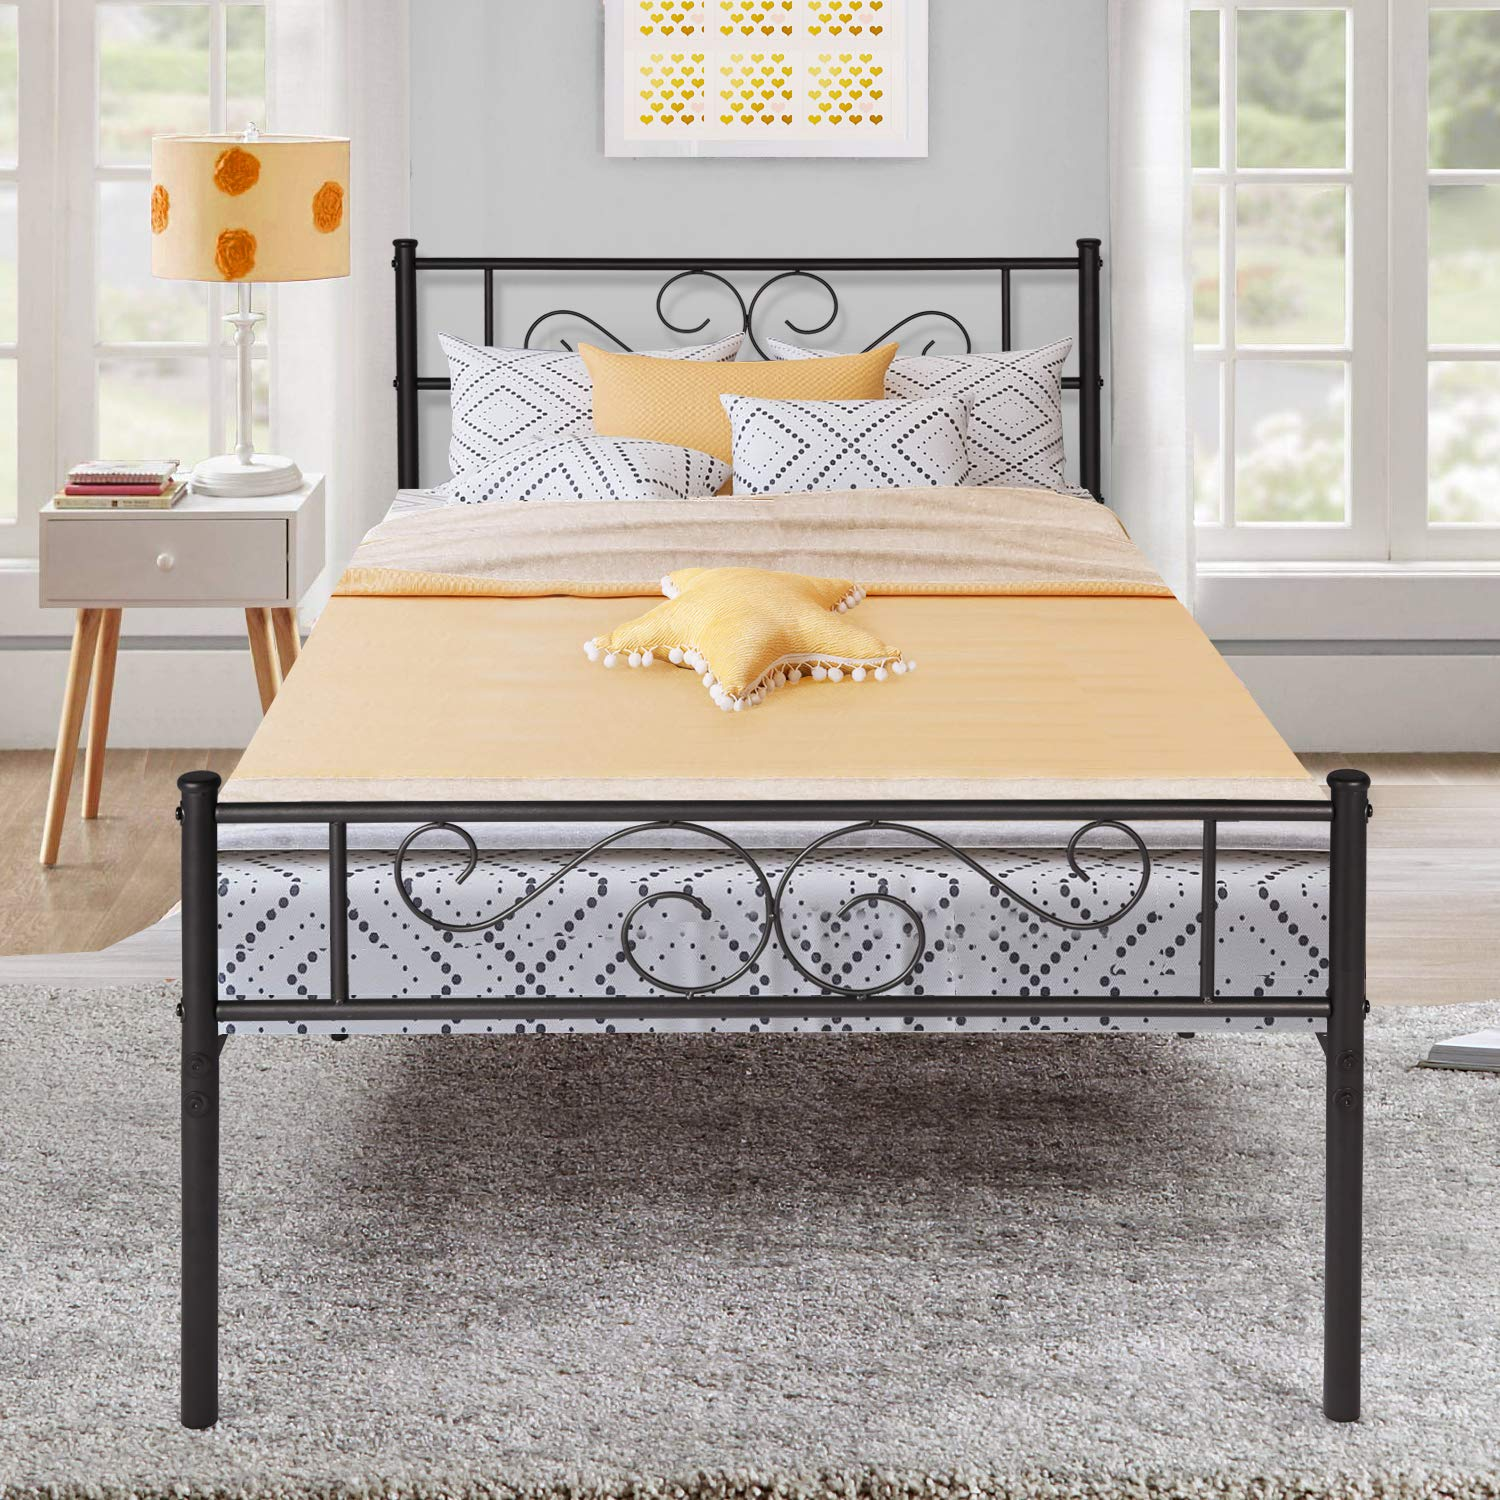 VECELO Metal Platform Bed Frame/Mattress Foundation with Vintage HeadBoard & Footboard, Easy Assembly Twin Black by VECELO